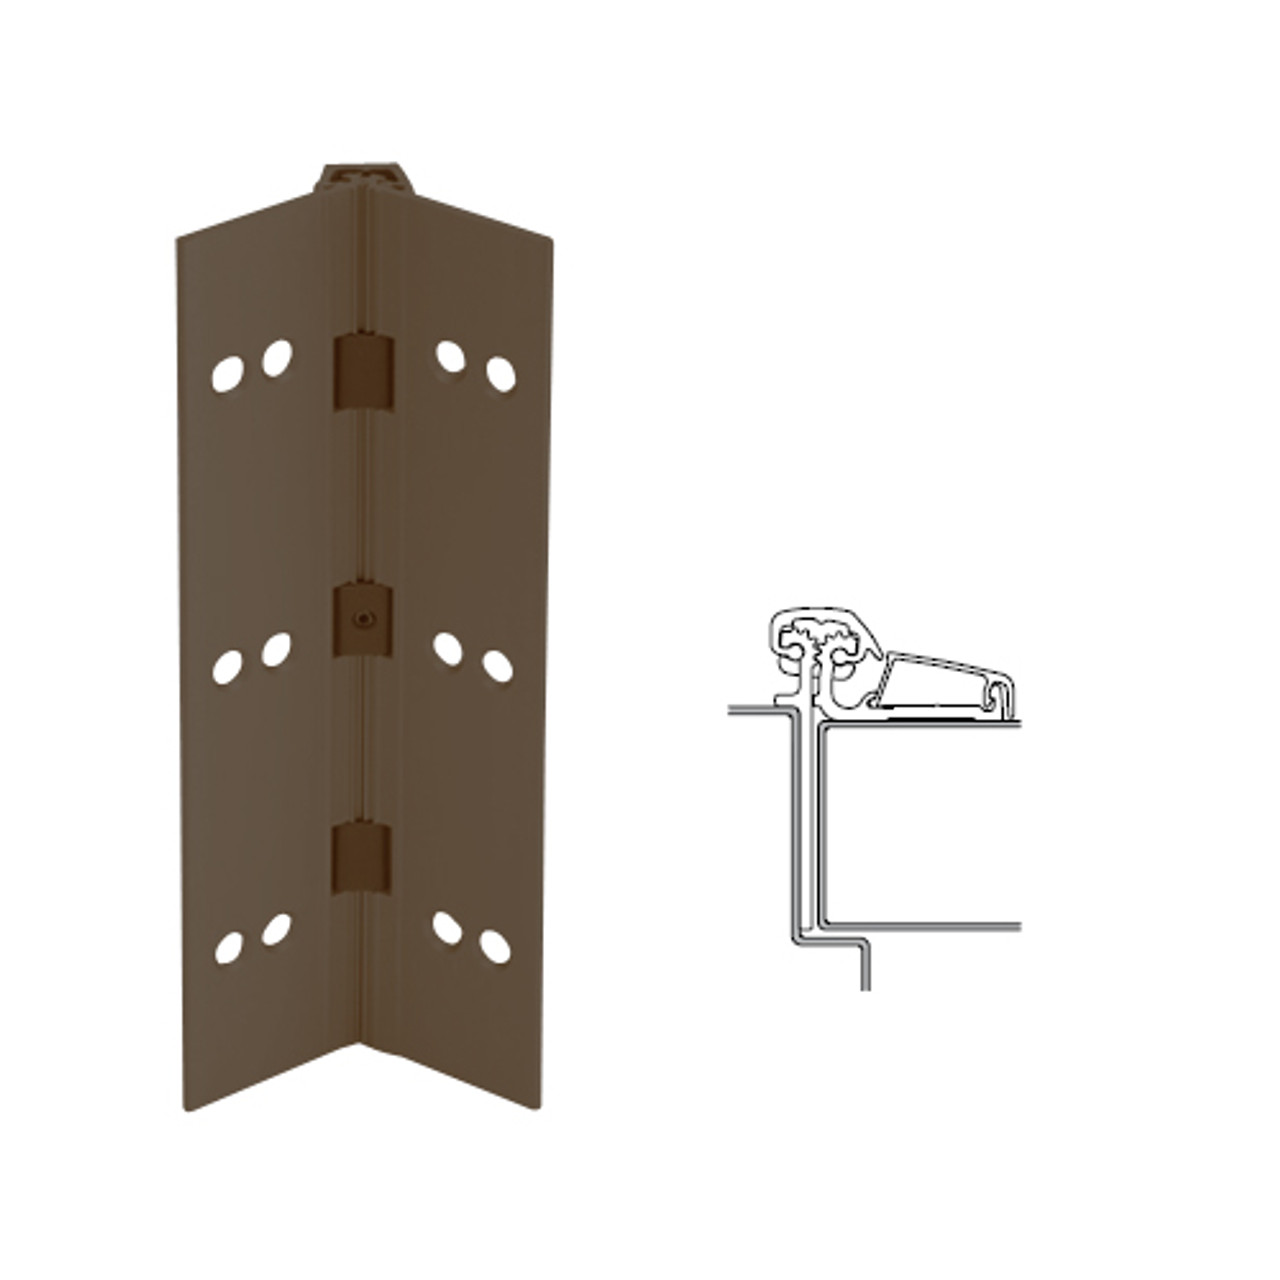 054XY-313AN-85 IVES Adjustable Half Surface Continuous Geared Hinges in Dark Bronze Anodized